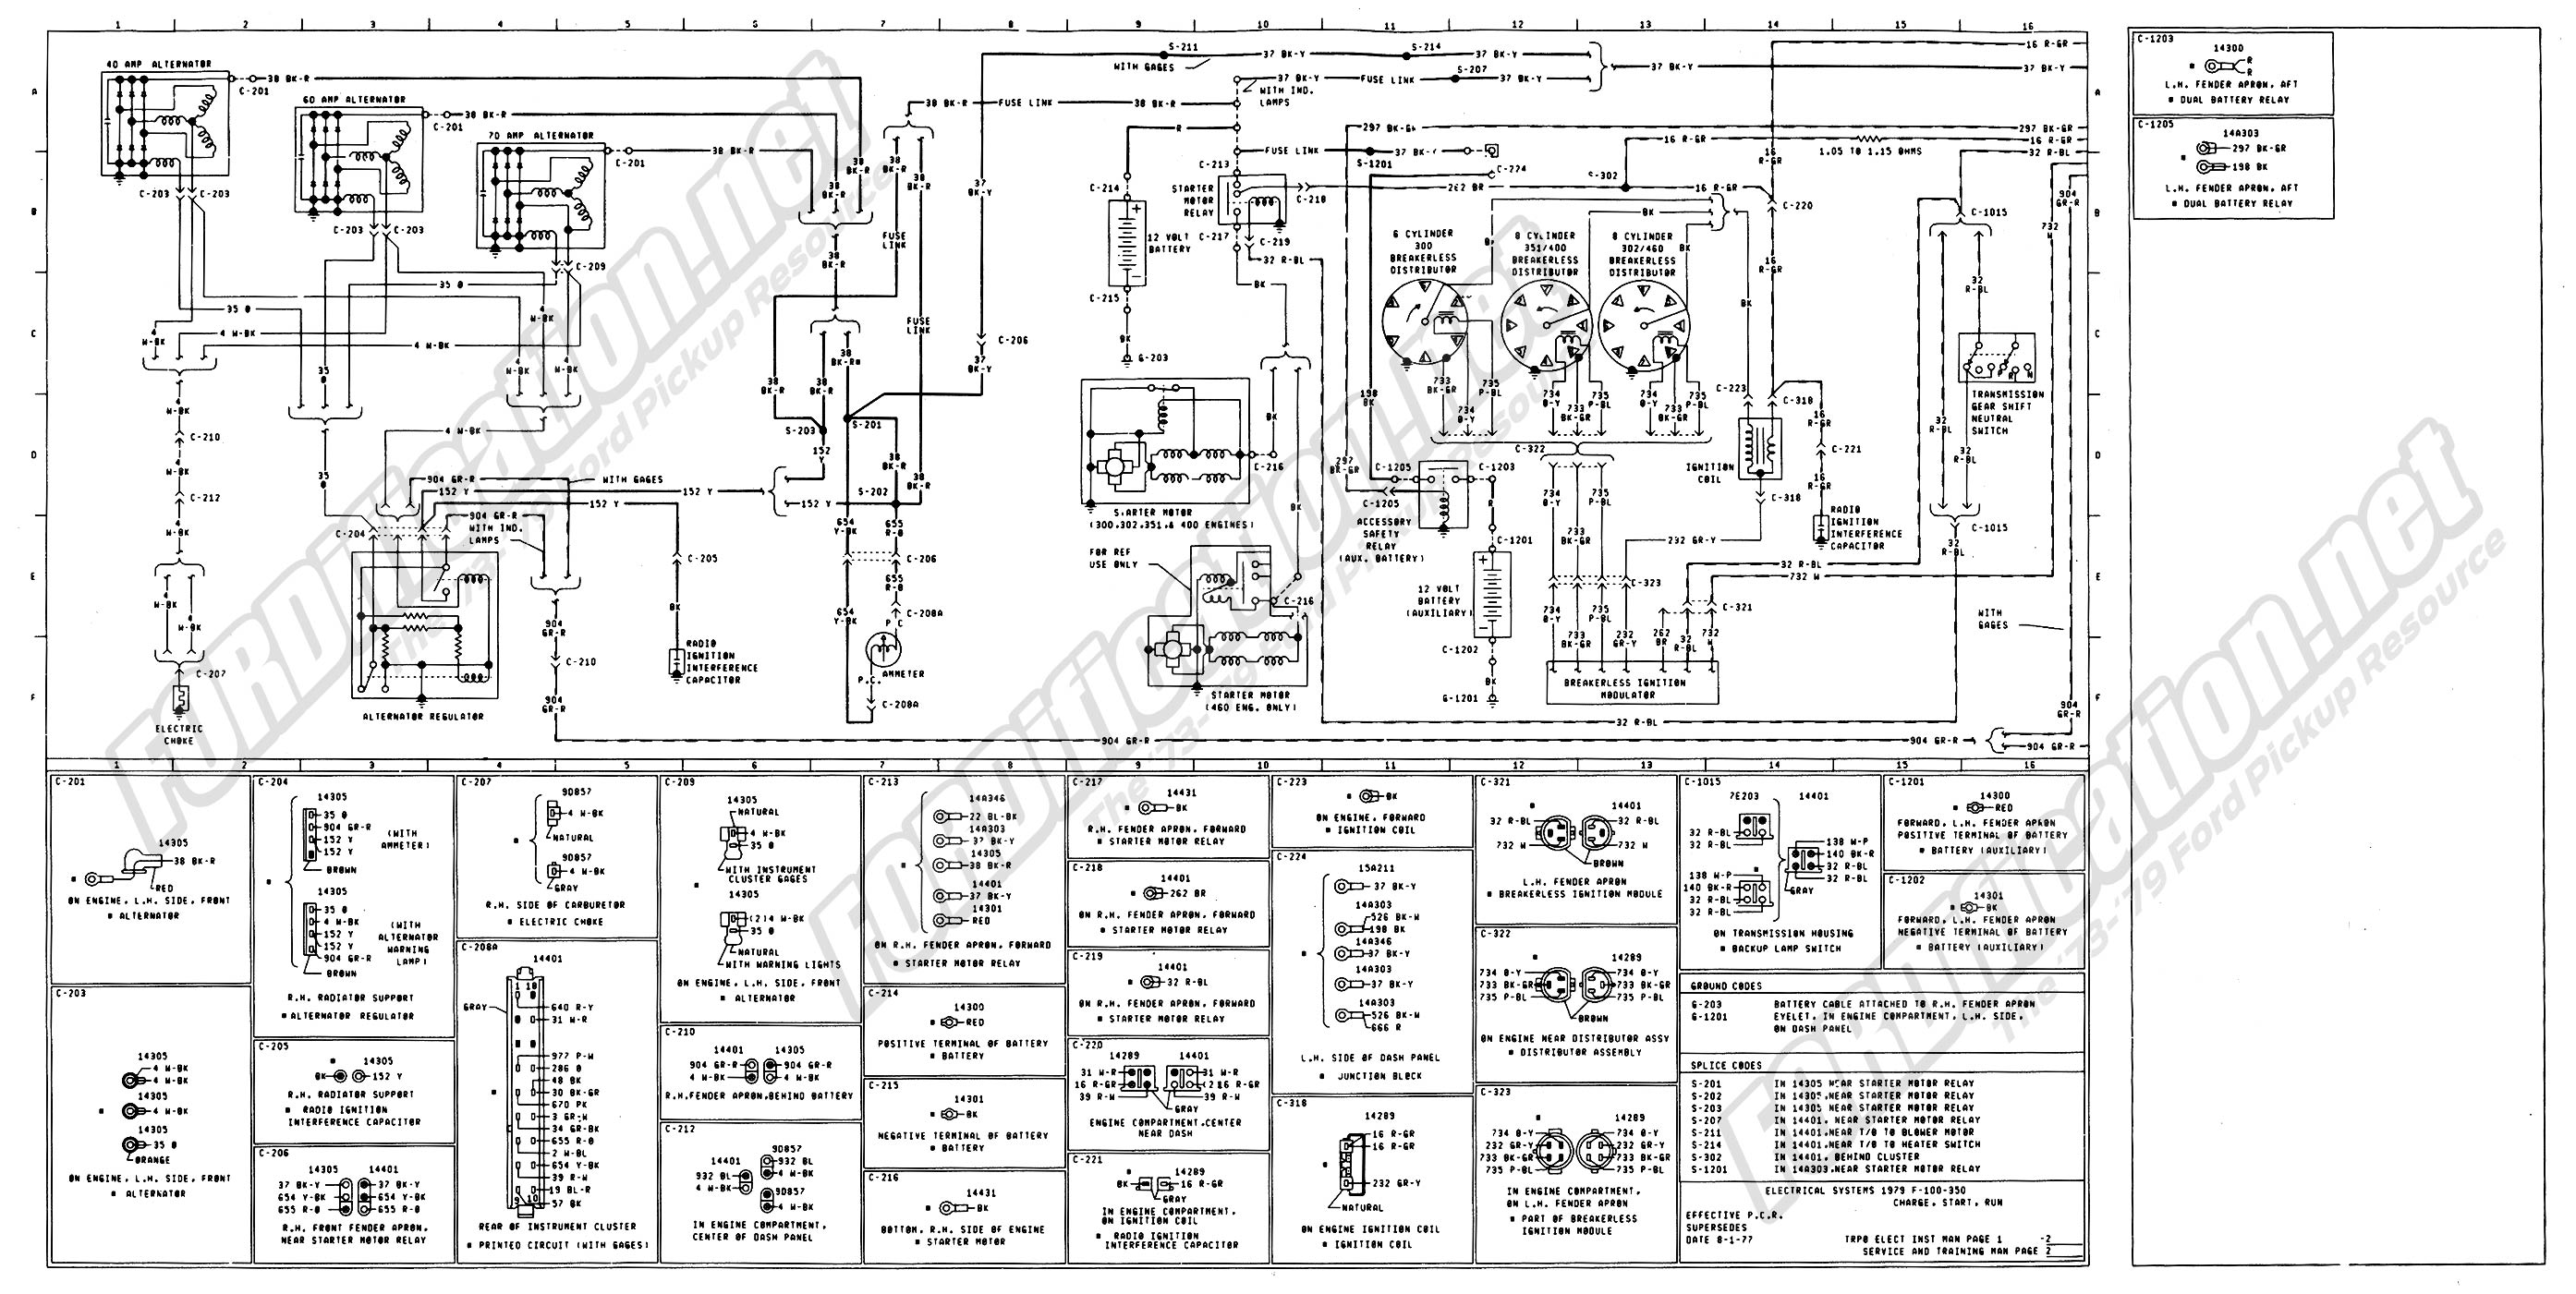 wiring_79master_2of9 1973 1979 ford truck wiring diagrams & schematics fordification net Ford F-350 Engine Schematic at n-0.co